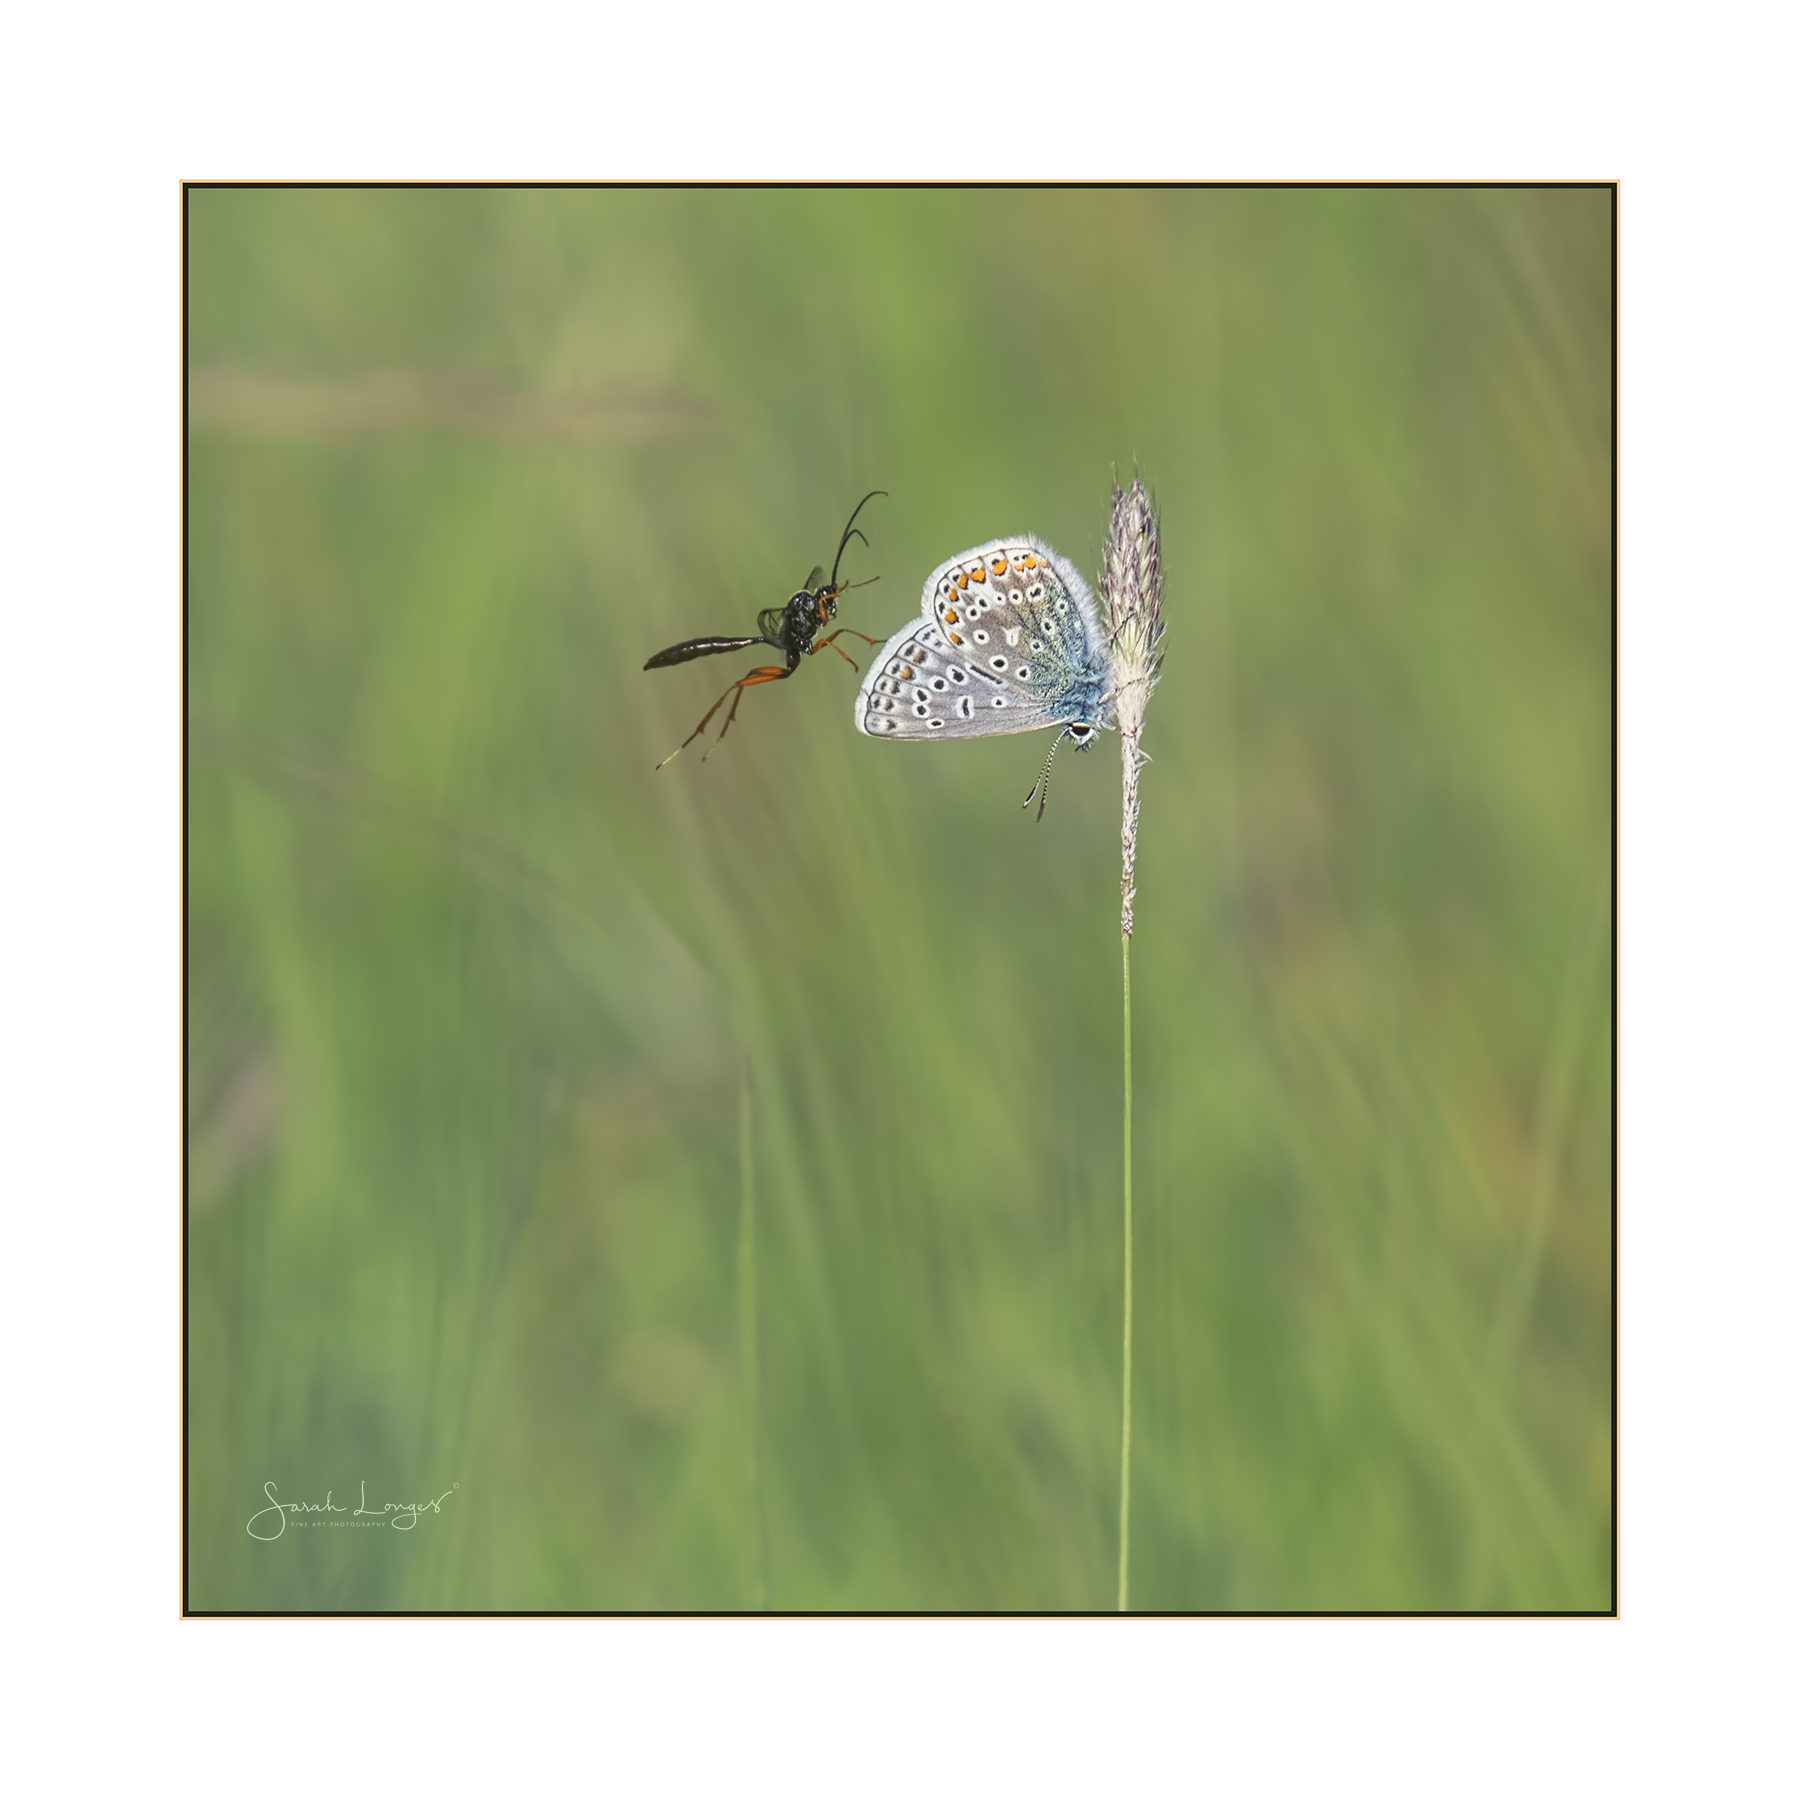 Ichneumonid parasitoid wasp and common blue butterfly